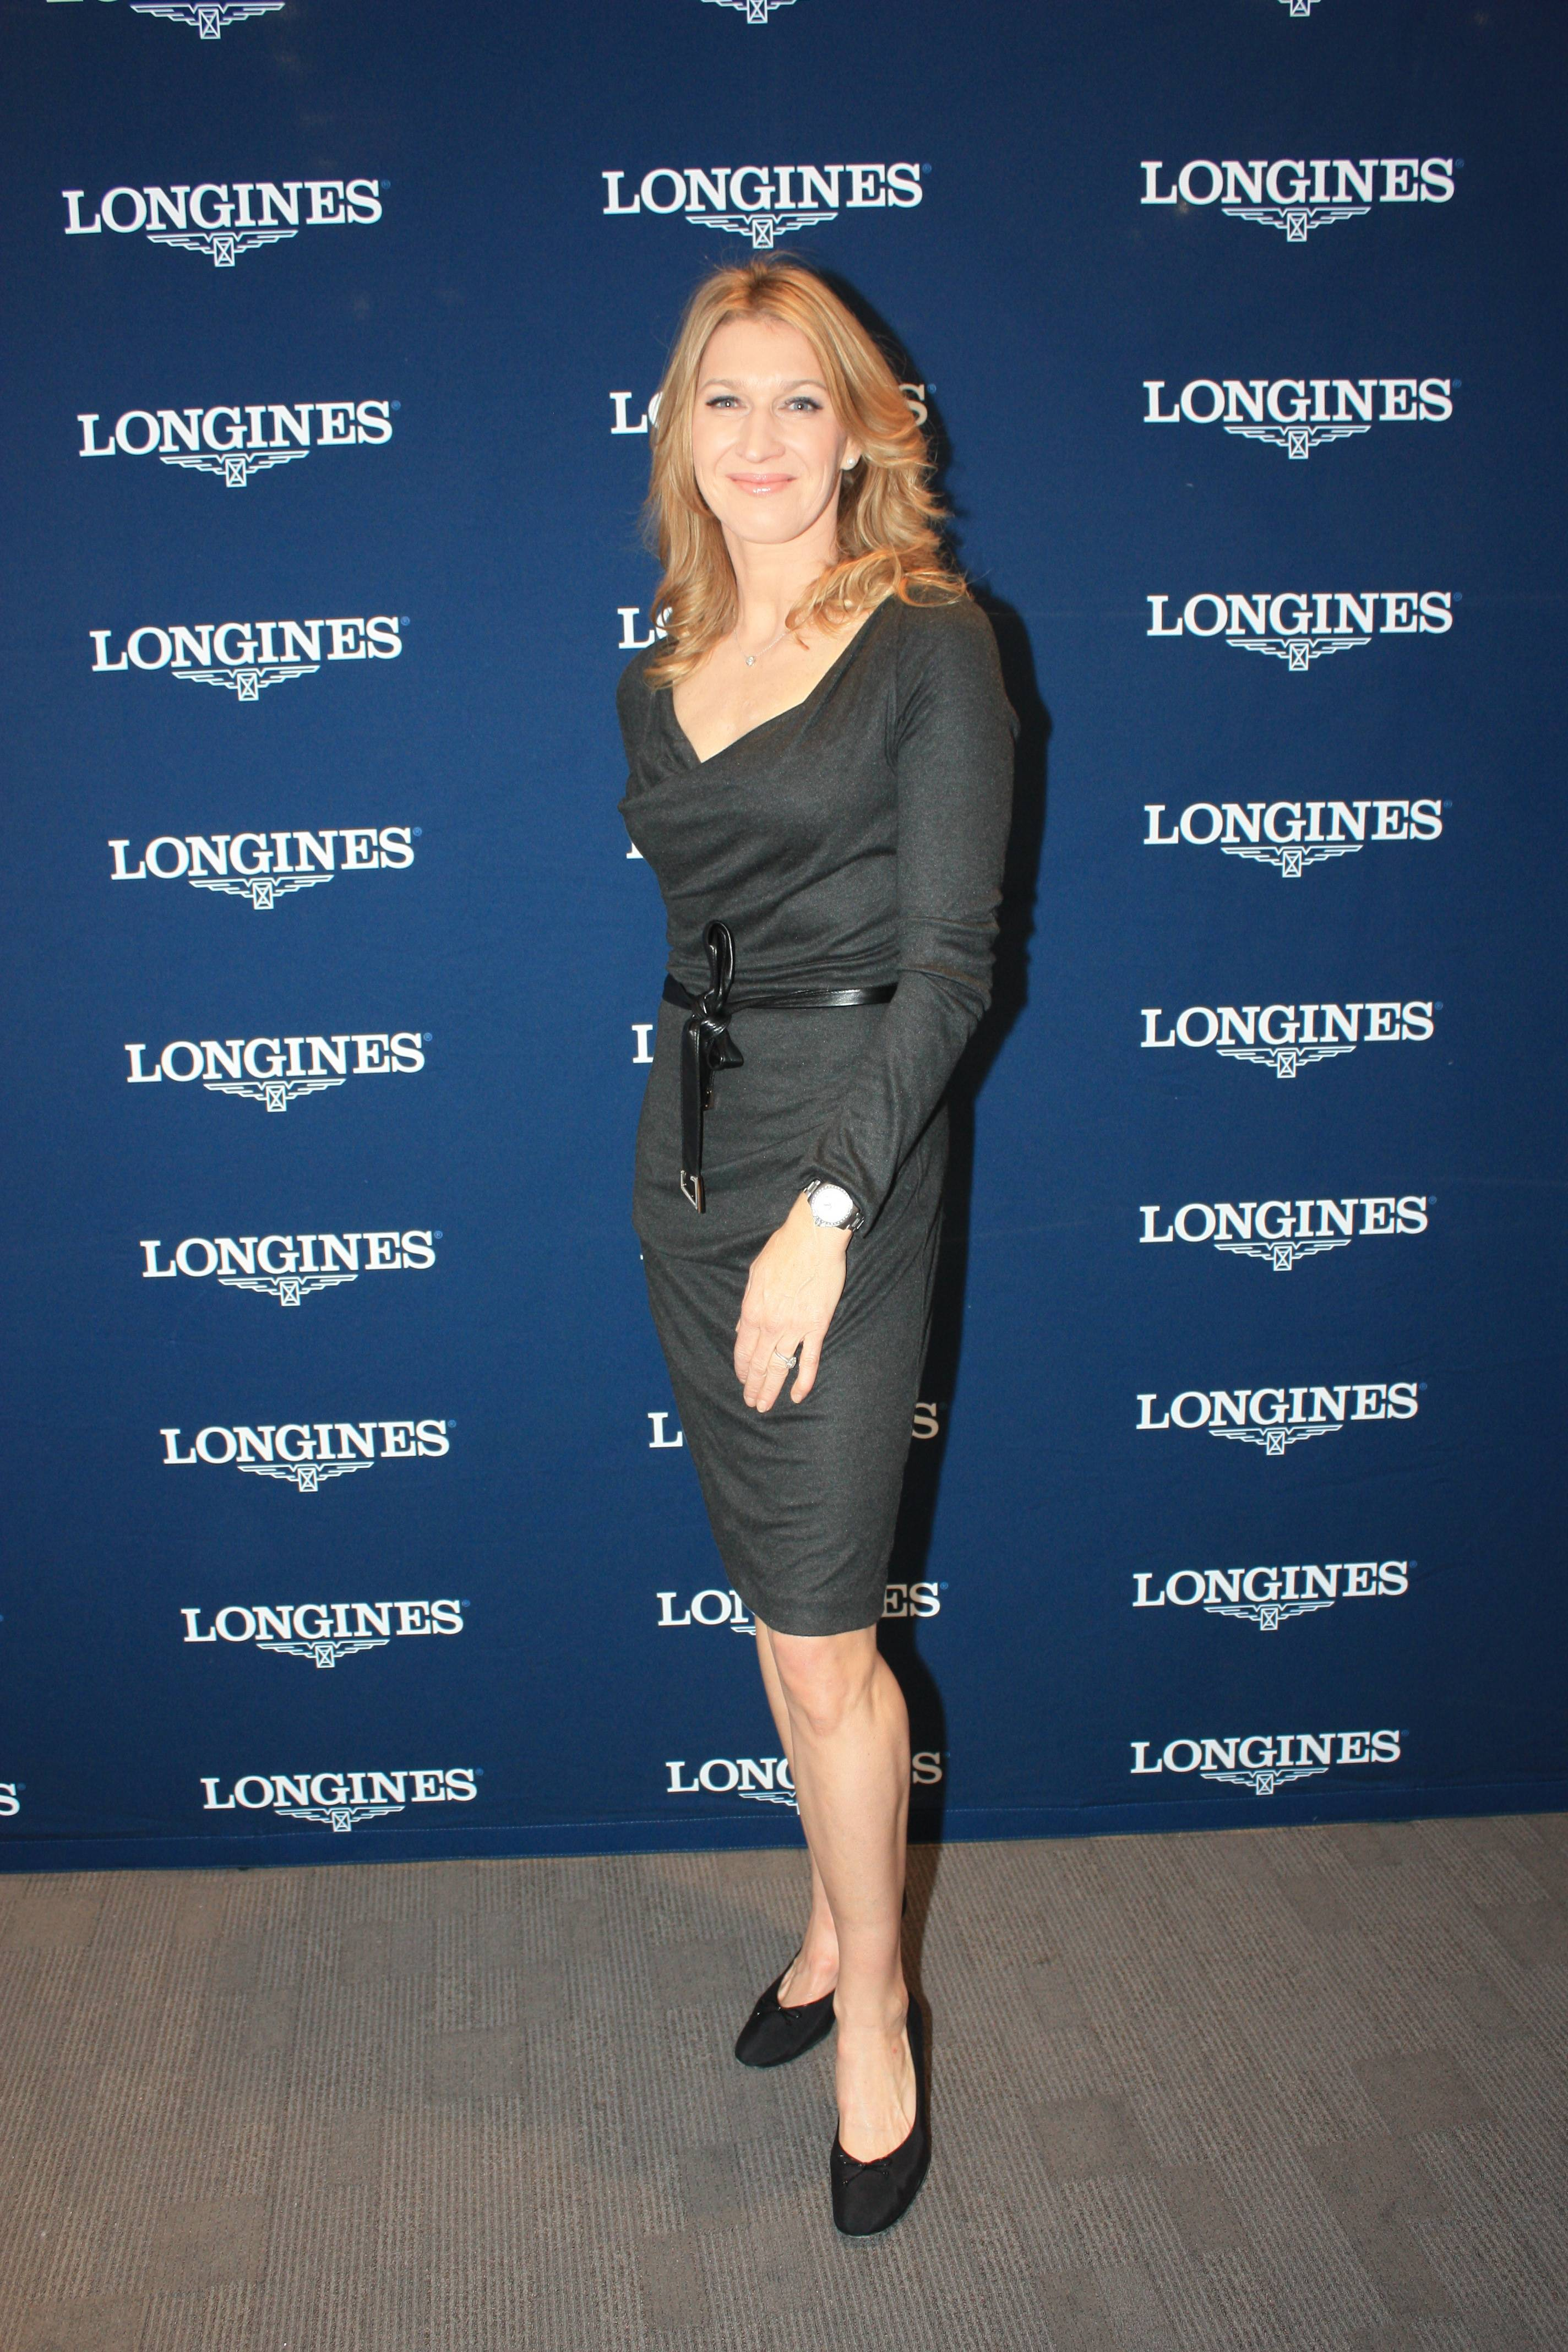 Stefanie Graf at Longines Shop within Tourneau 2